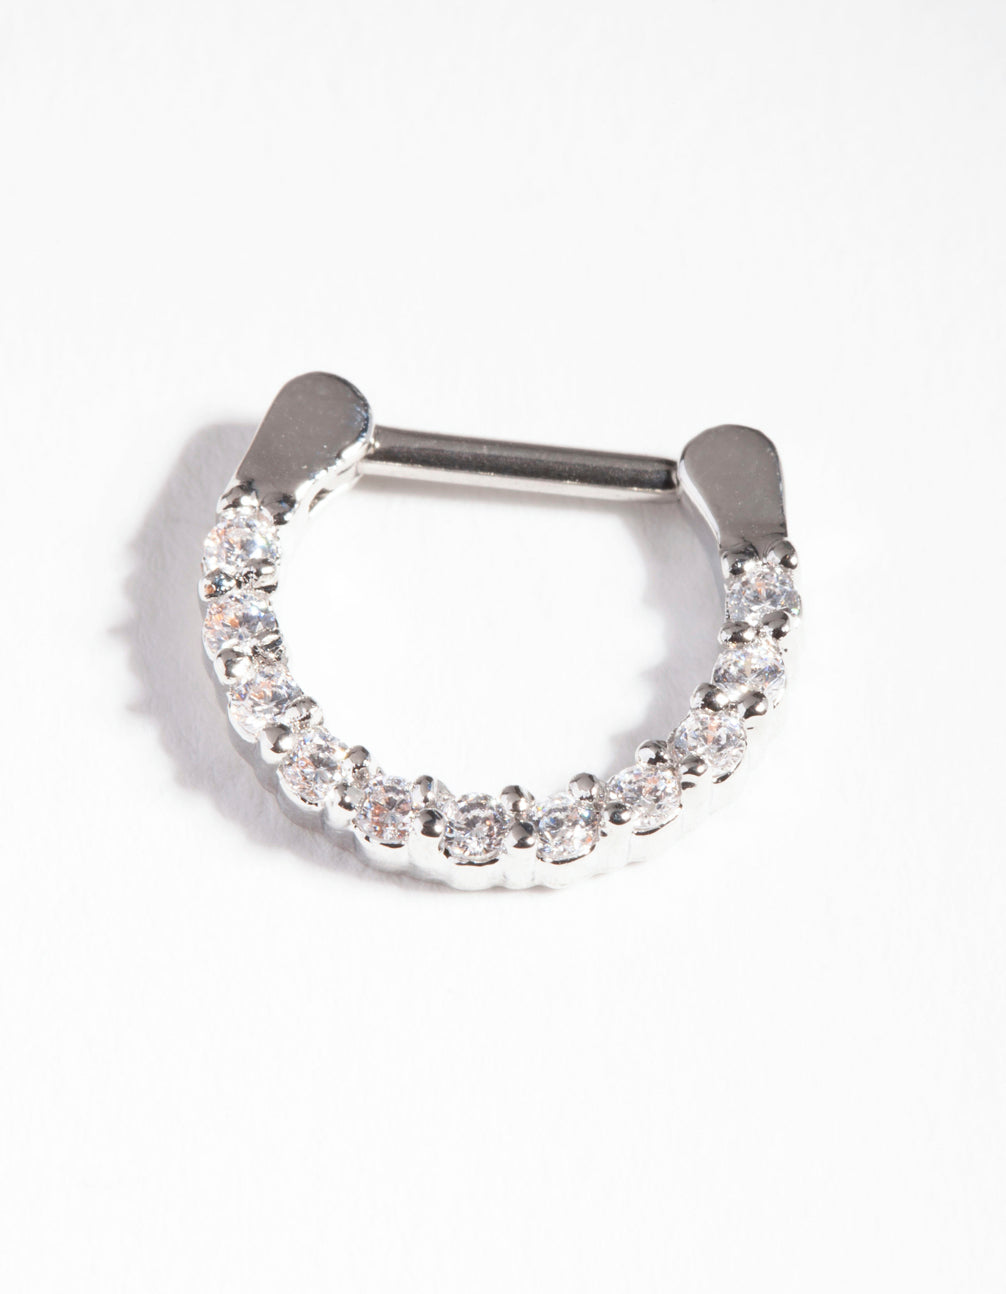 Surgical Steel Cubic Zirconia Septum Ring